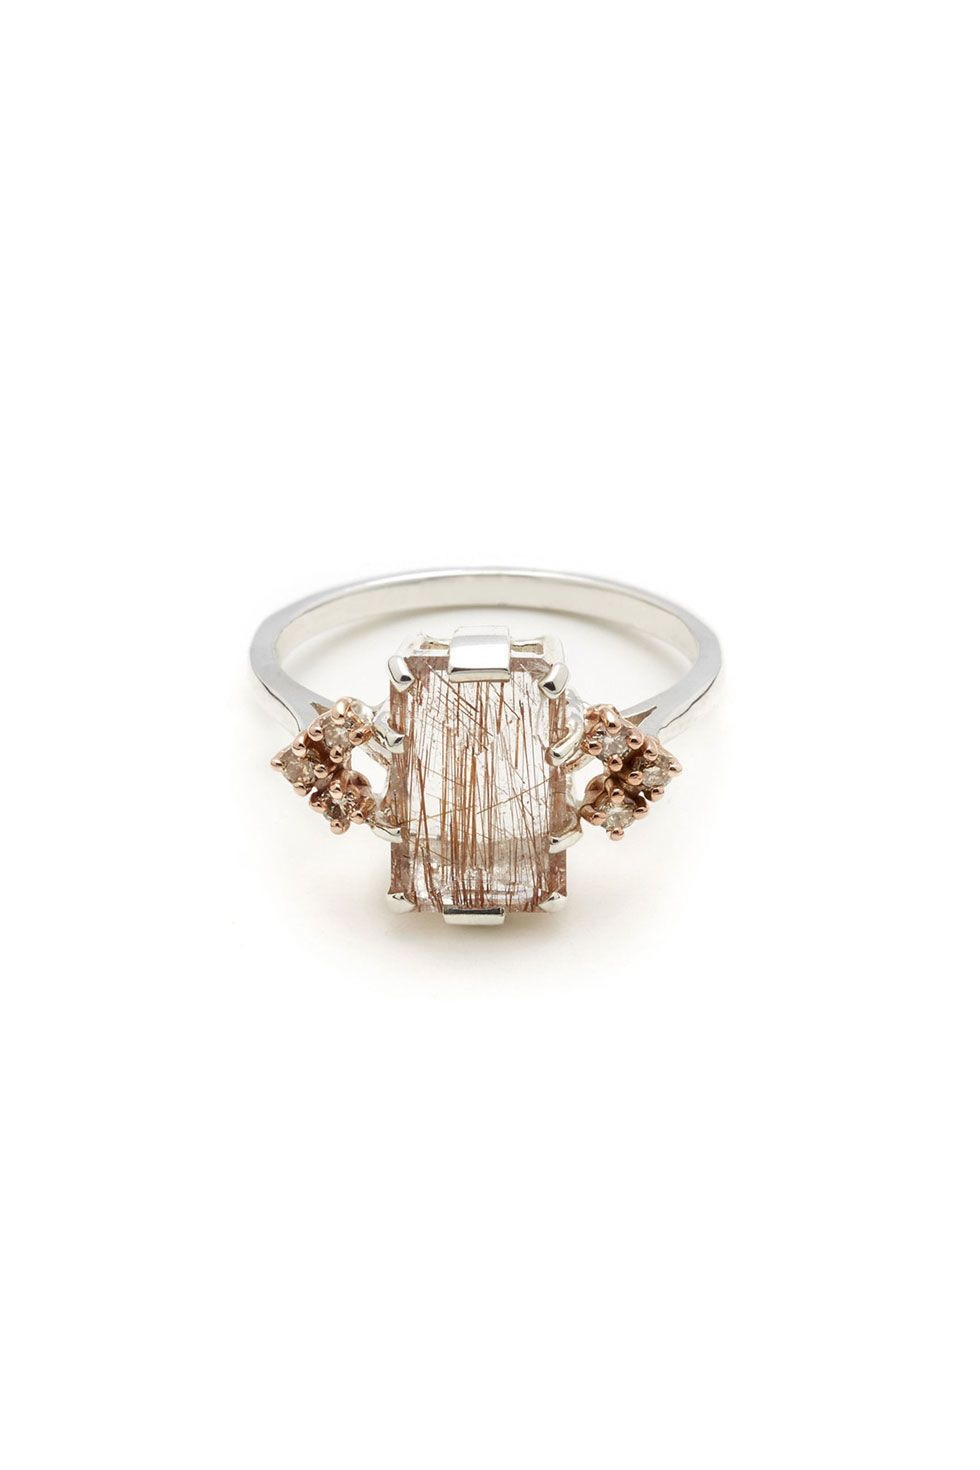 diamond trends blog love alternativerings engagement we alternative rings